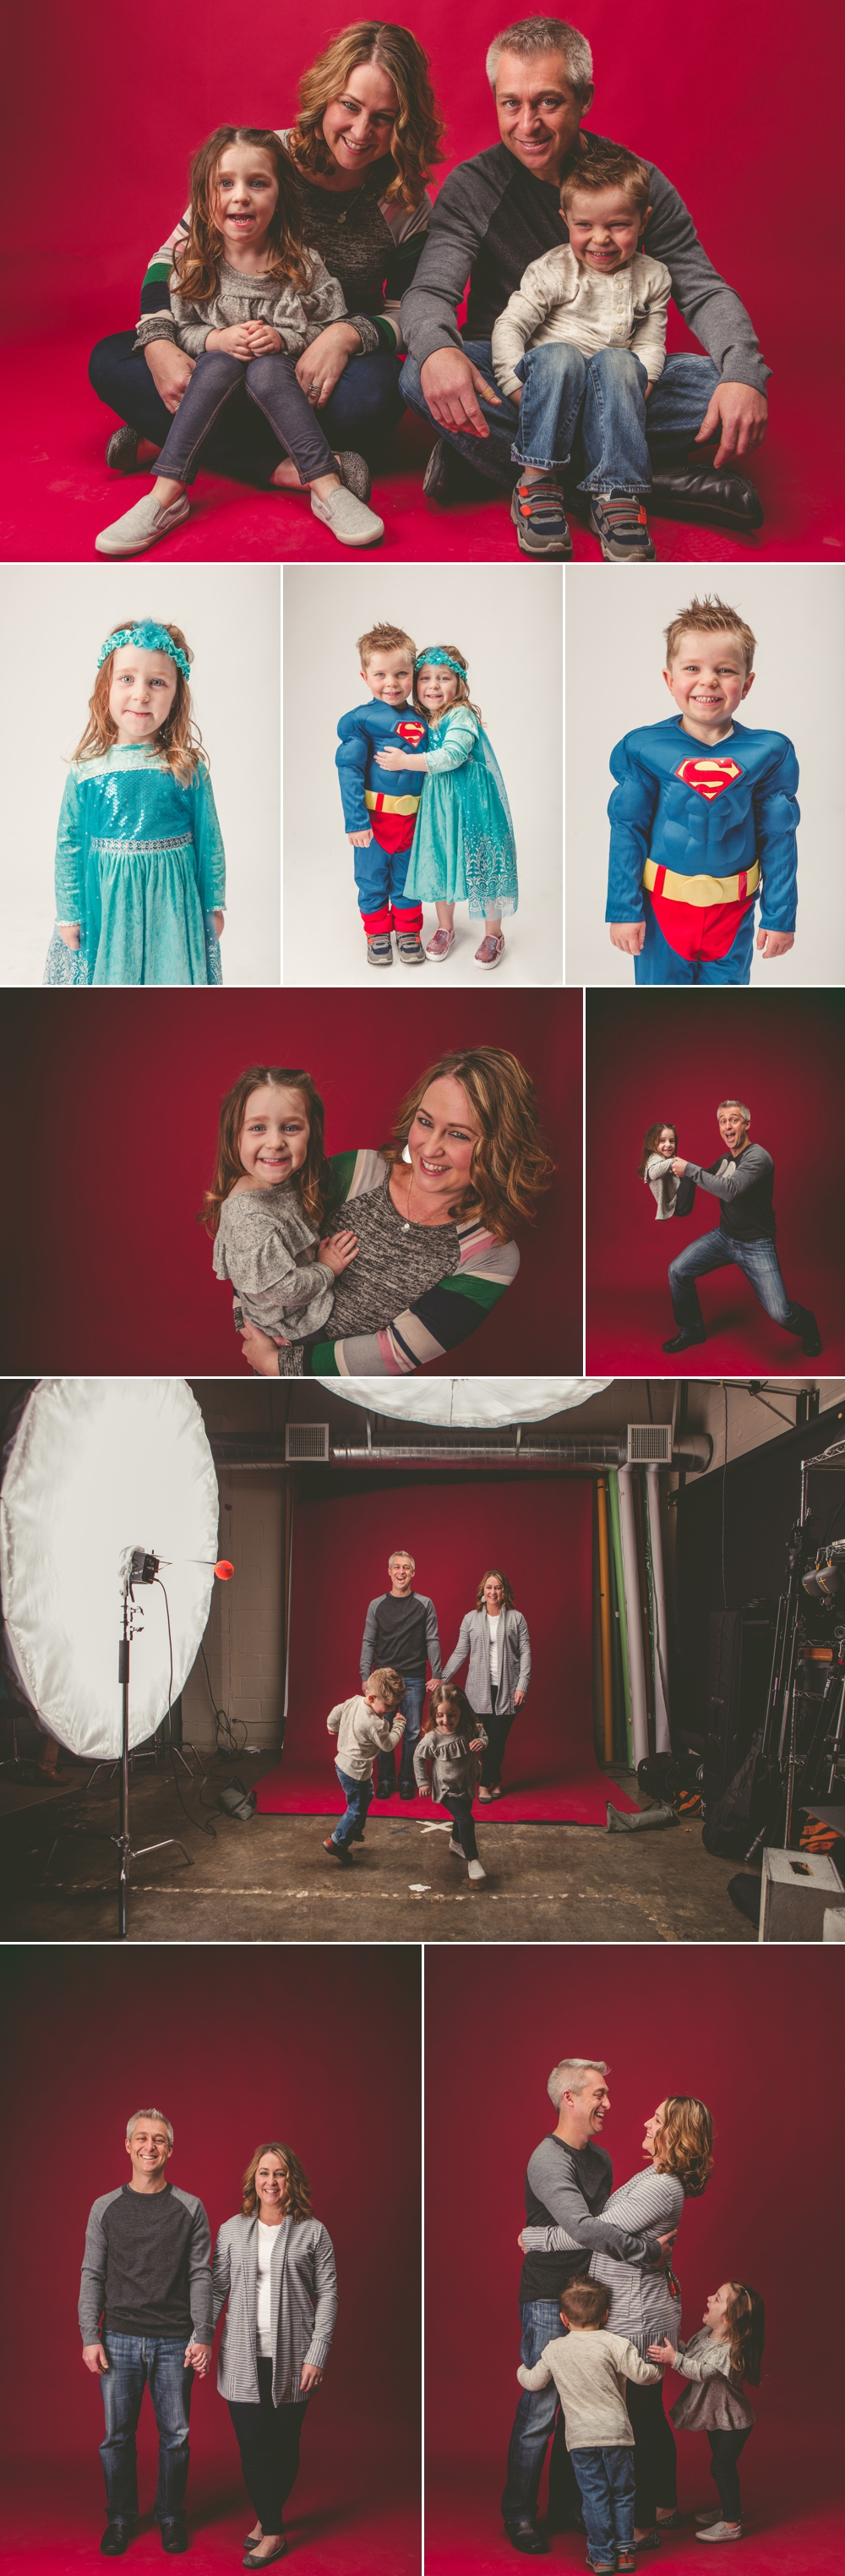 jason_domingues_photography_best_kansas_city_photographer_family_photos_modern_studio_session_0002.JPG